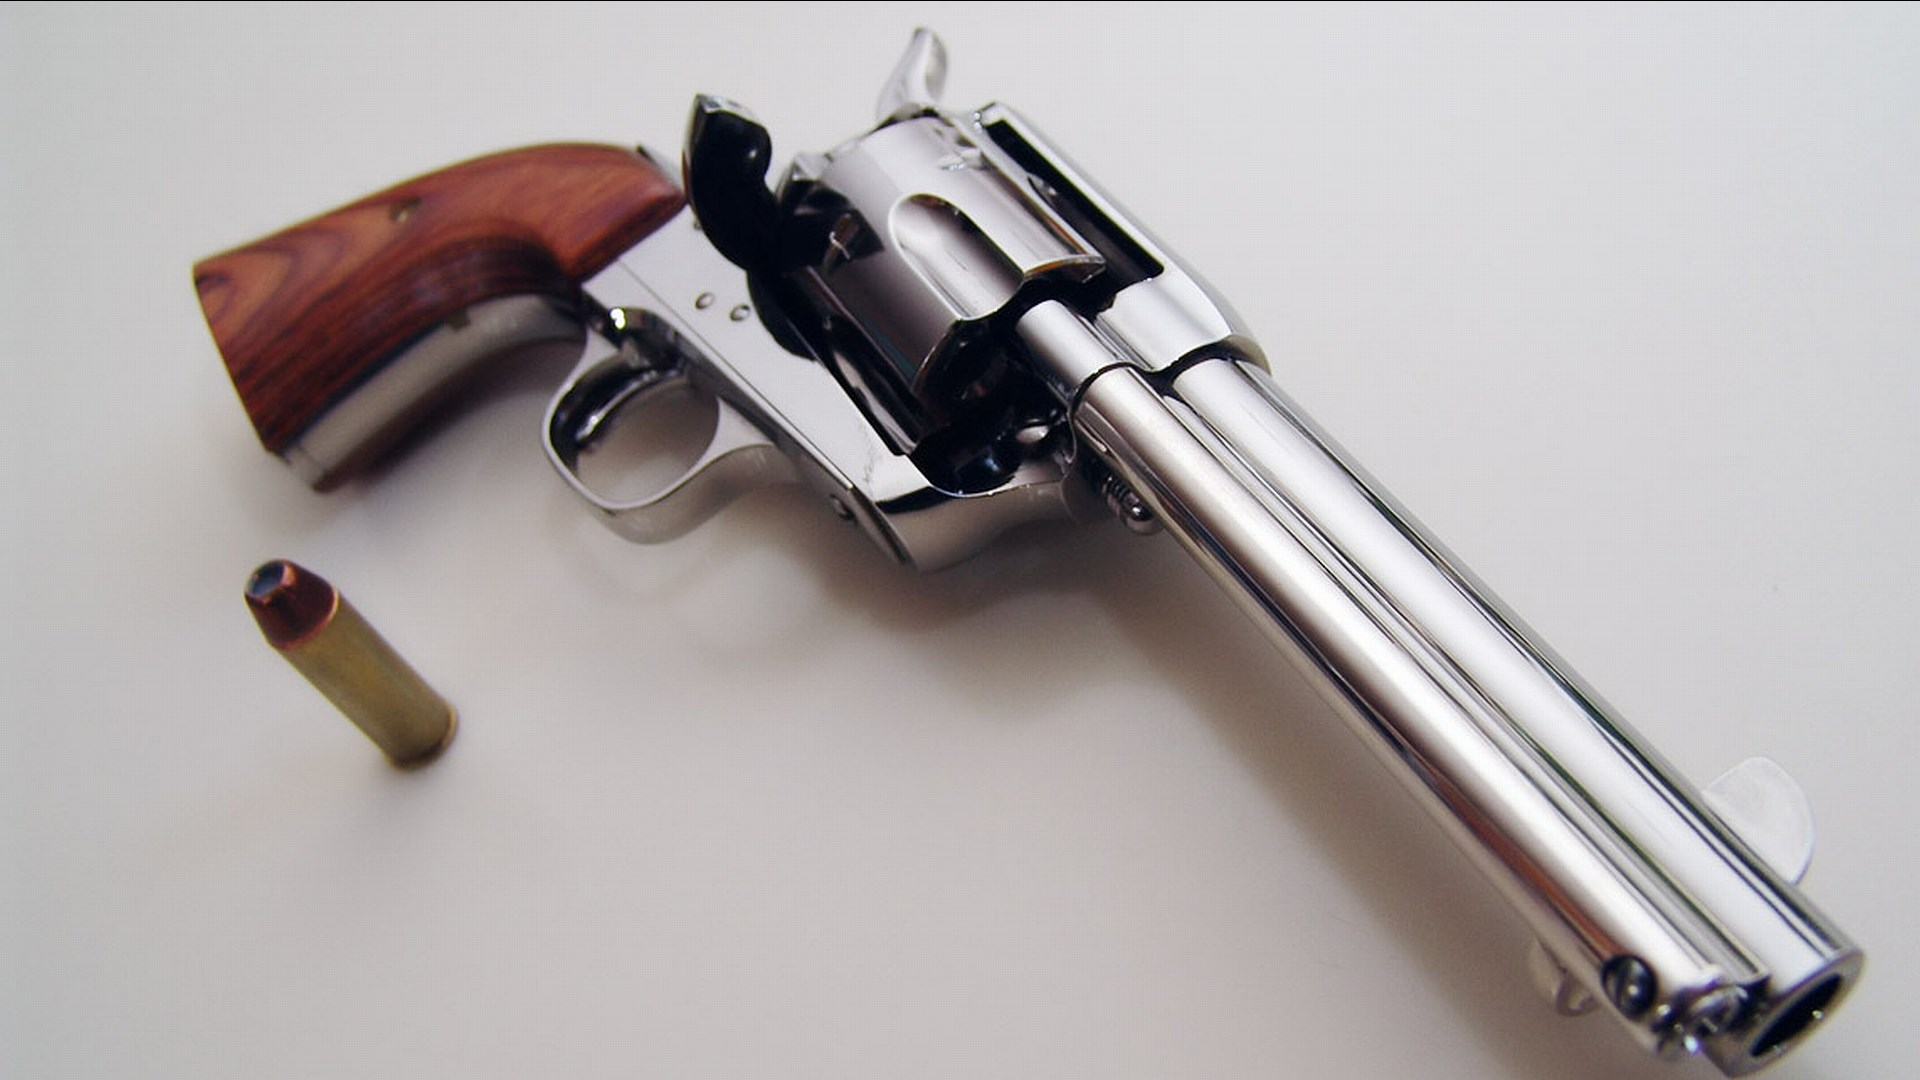 HD Quality Wallpaper   Collection: Weapons, 1920x1080 Mateba Unica Revolver